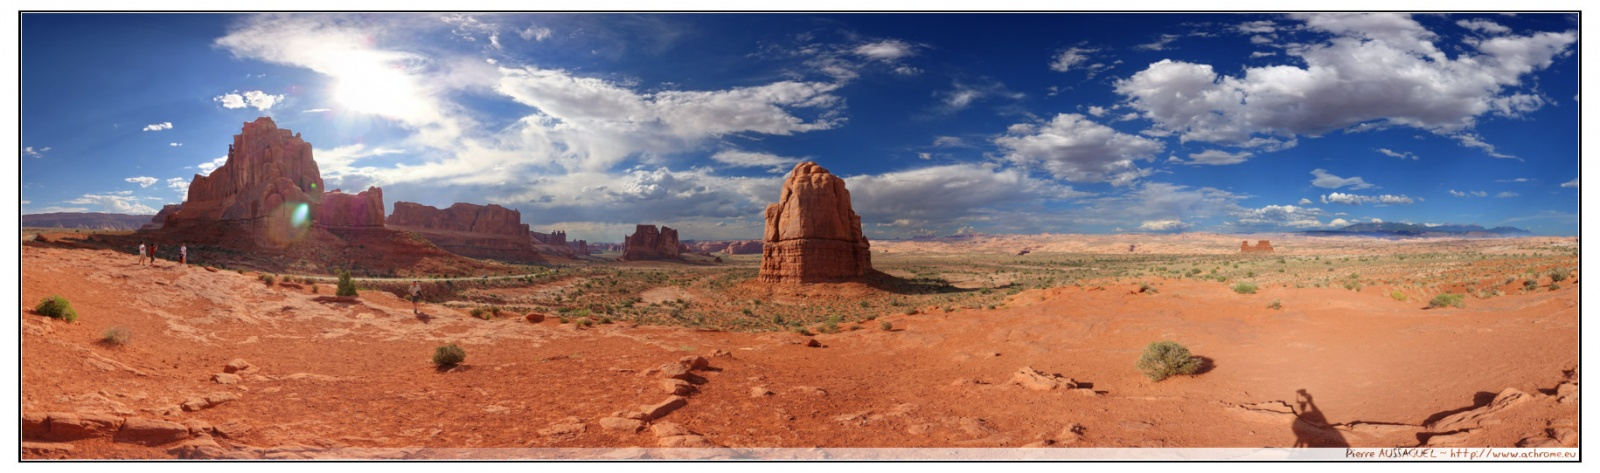 Pano-Towers_Viewpoint-Arches_Park-Utah.jpg